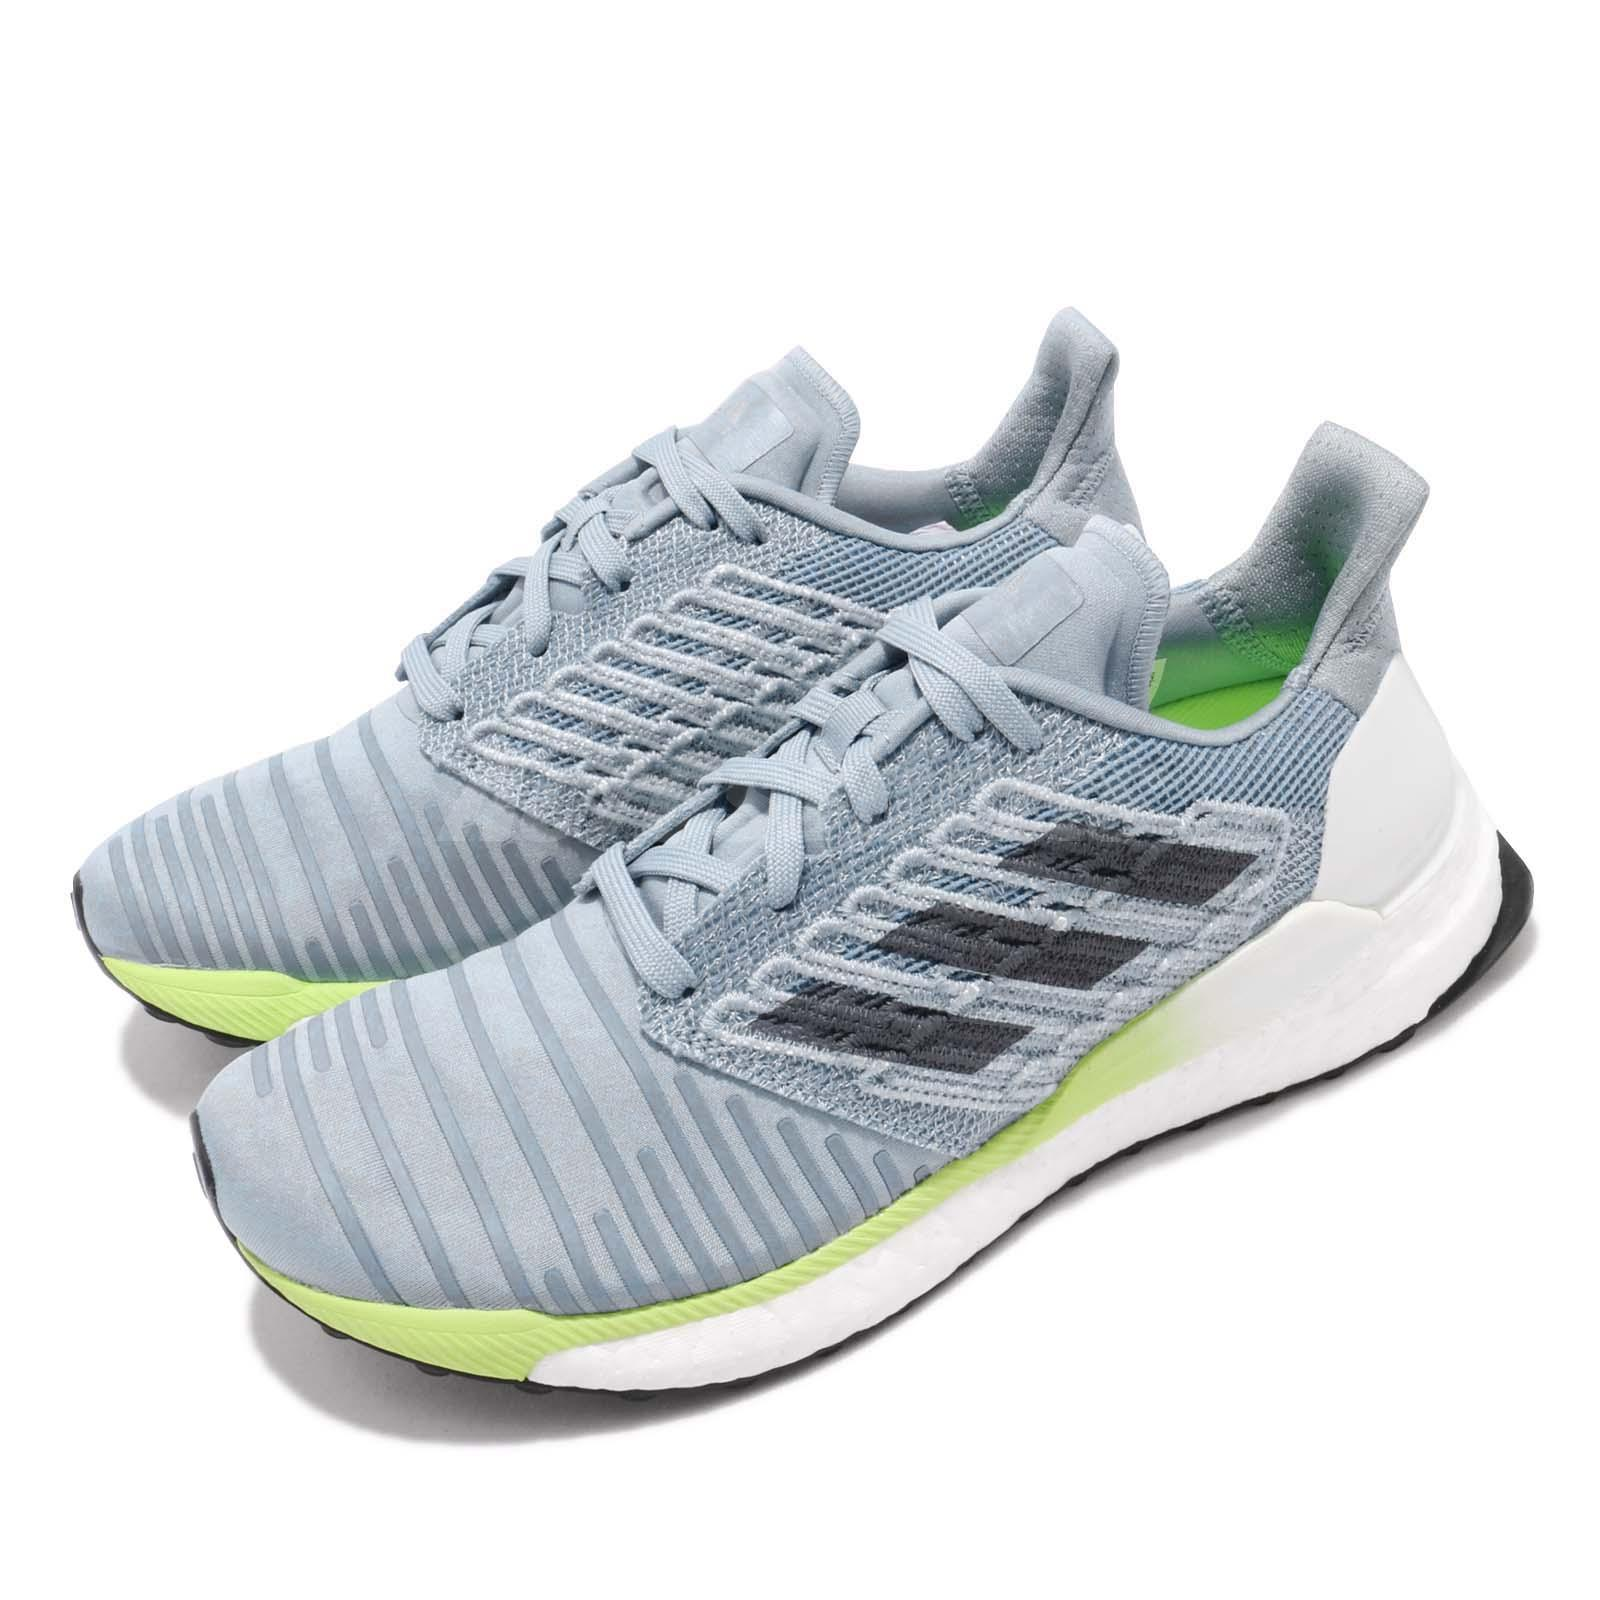 668bb26591c89 Details about adidas Solar BOOST W Grey Onix Blue Hi-Res Yellow Women  Running Shoes B96285